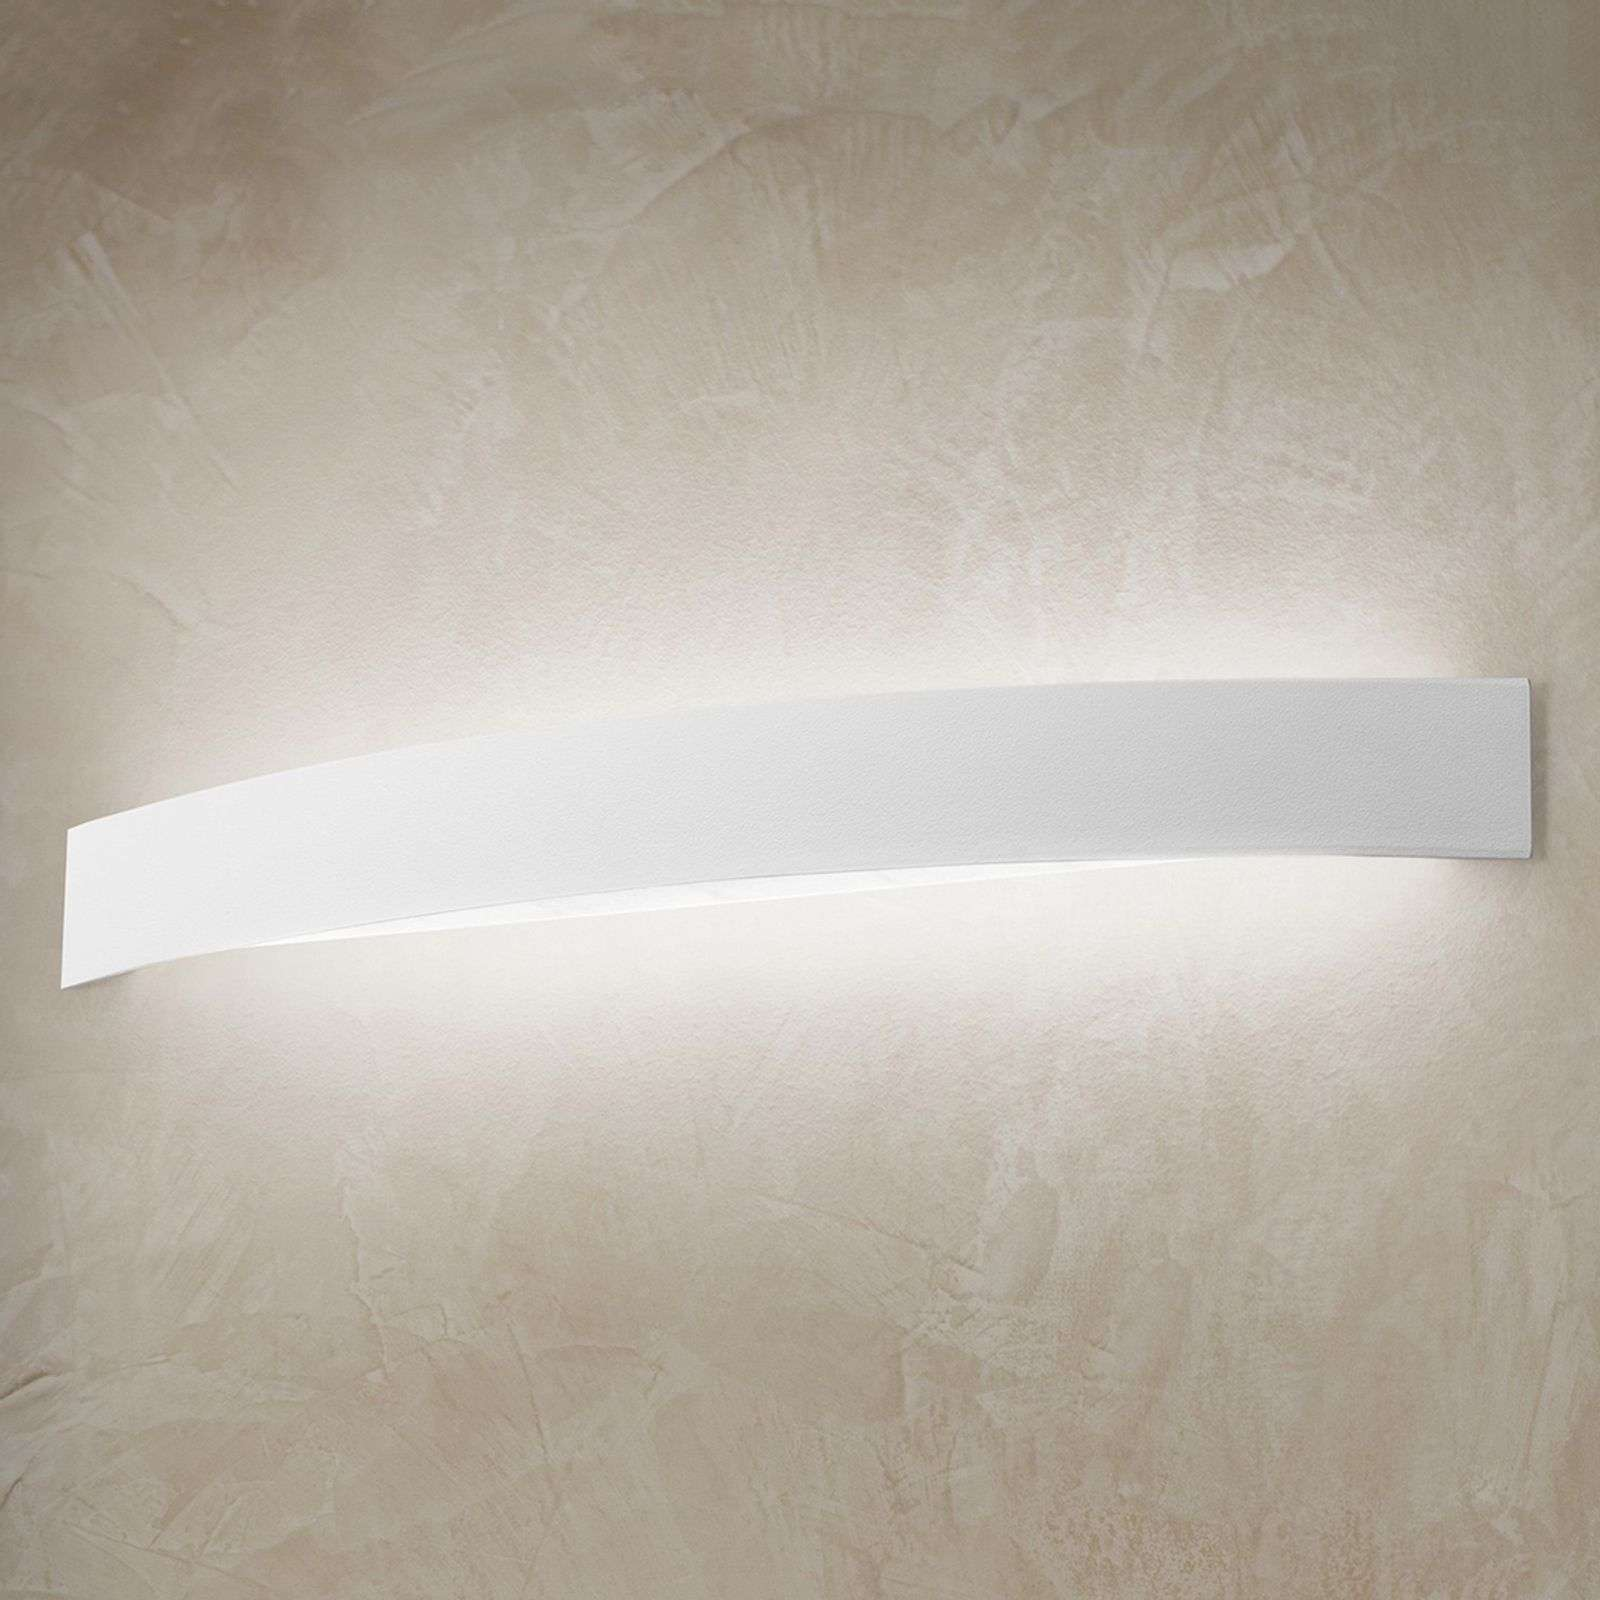 Applique LED courbée Curve en blanc